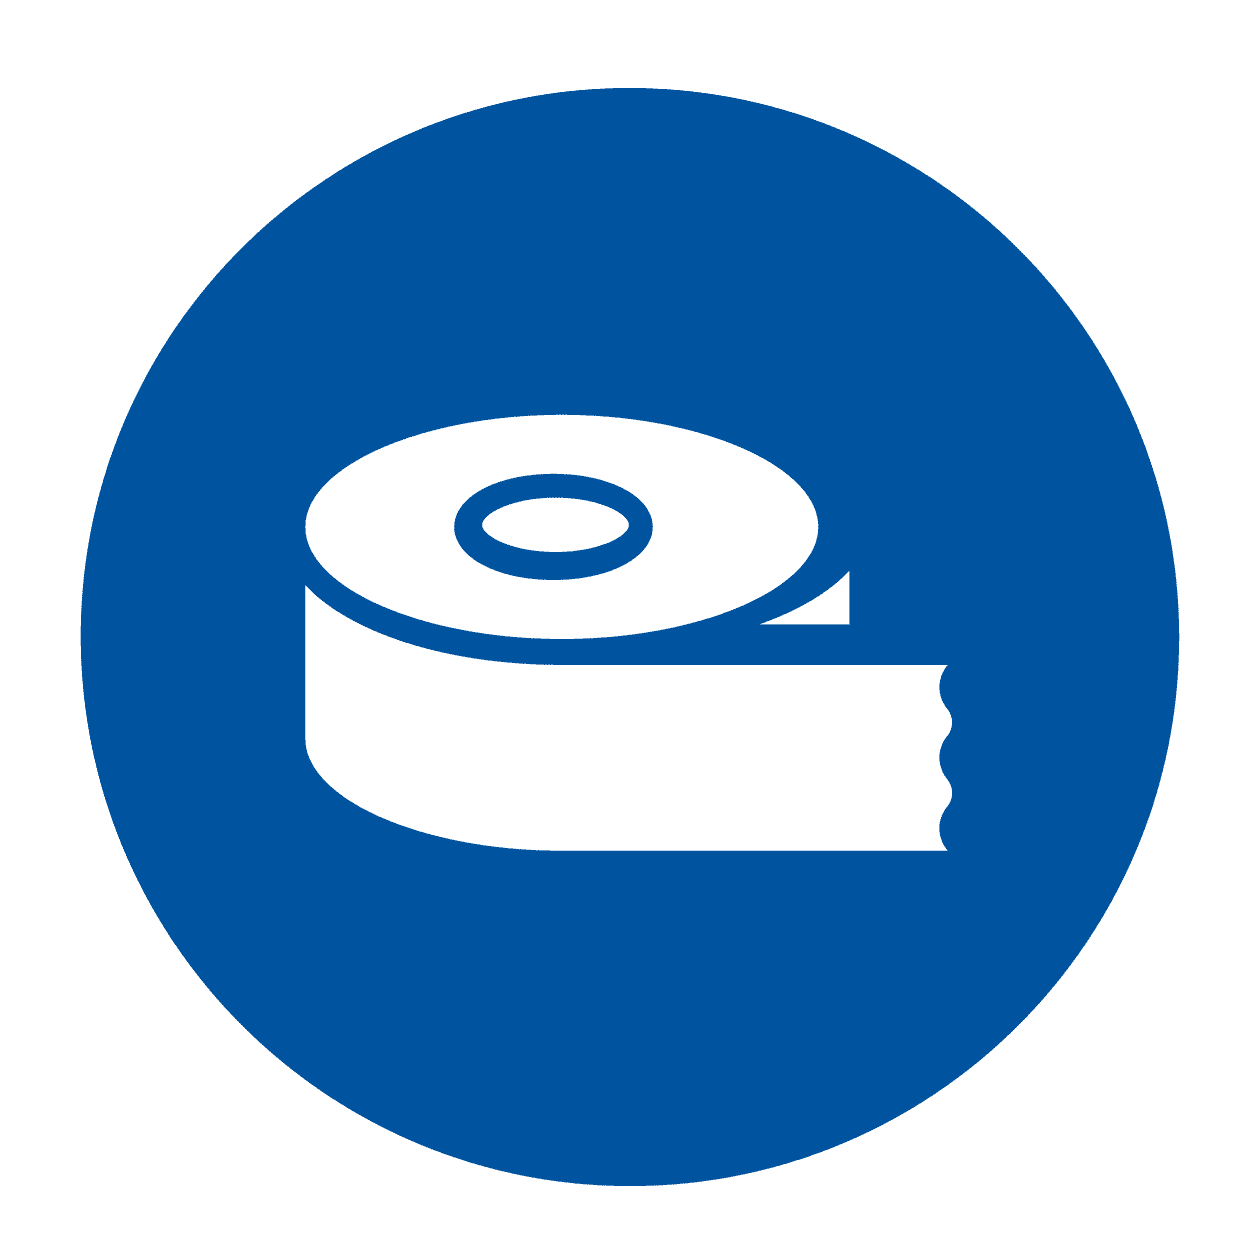 Tape Icon by Vectorstall from the Noun Project